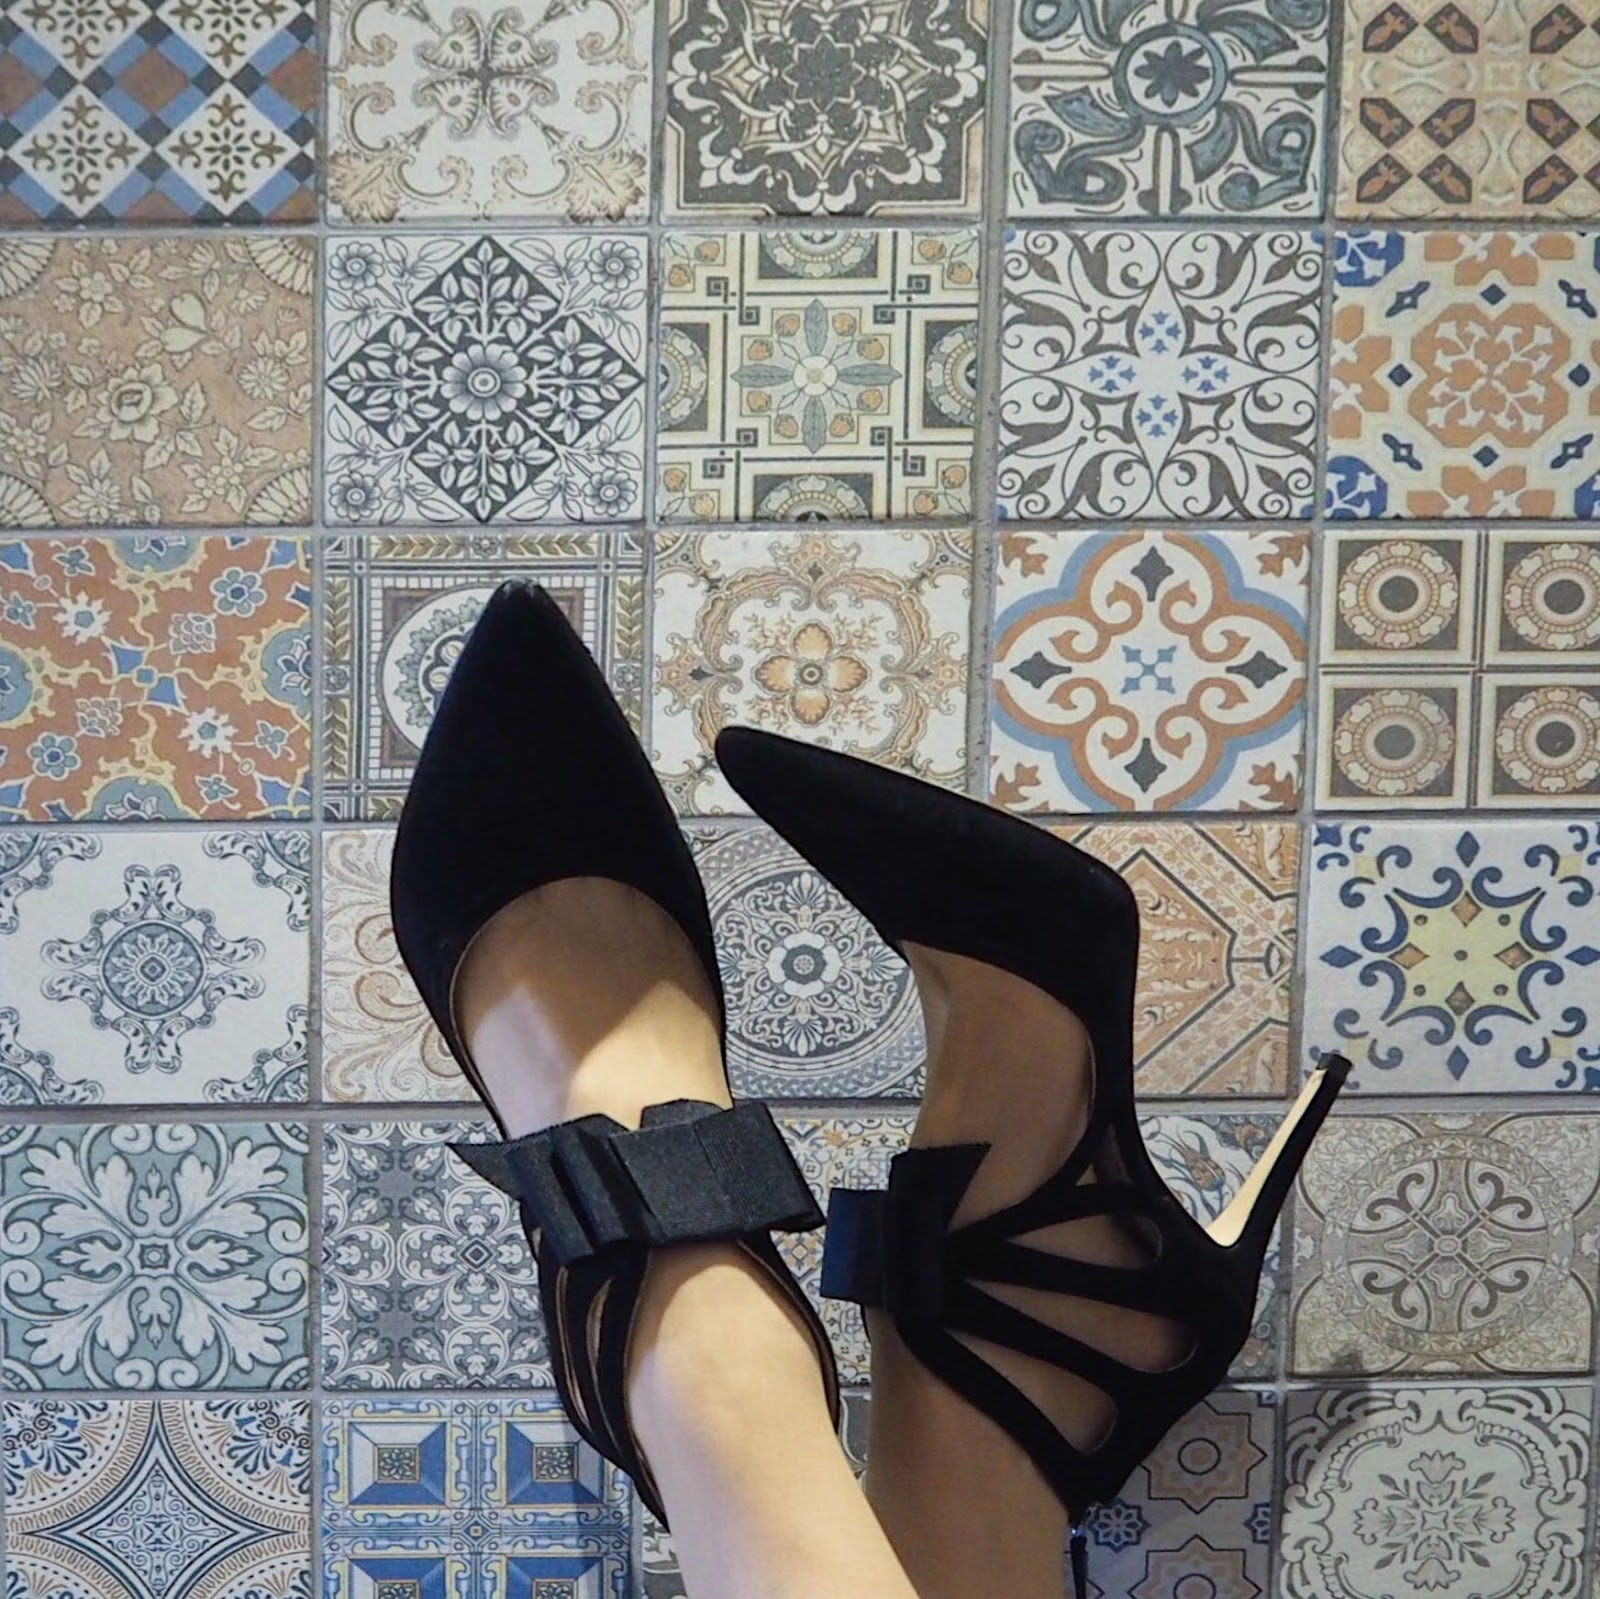 High heeled bow shoes by Boden, tiled wall at Beck Hall hotel, Malham